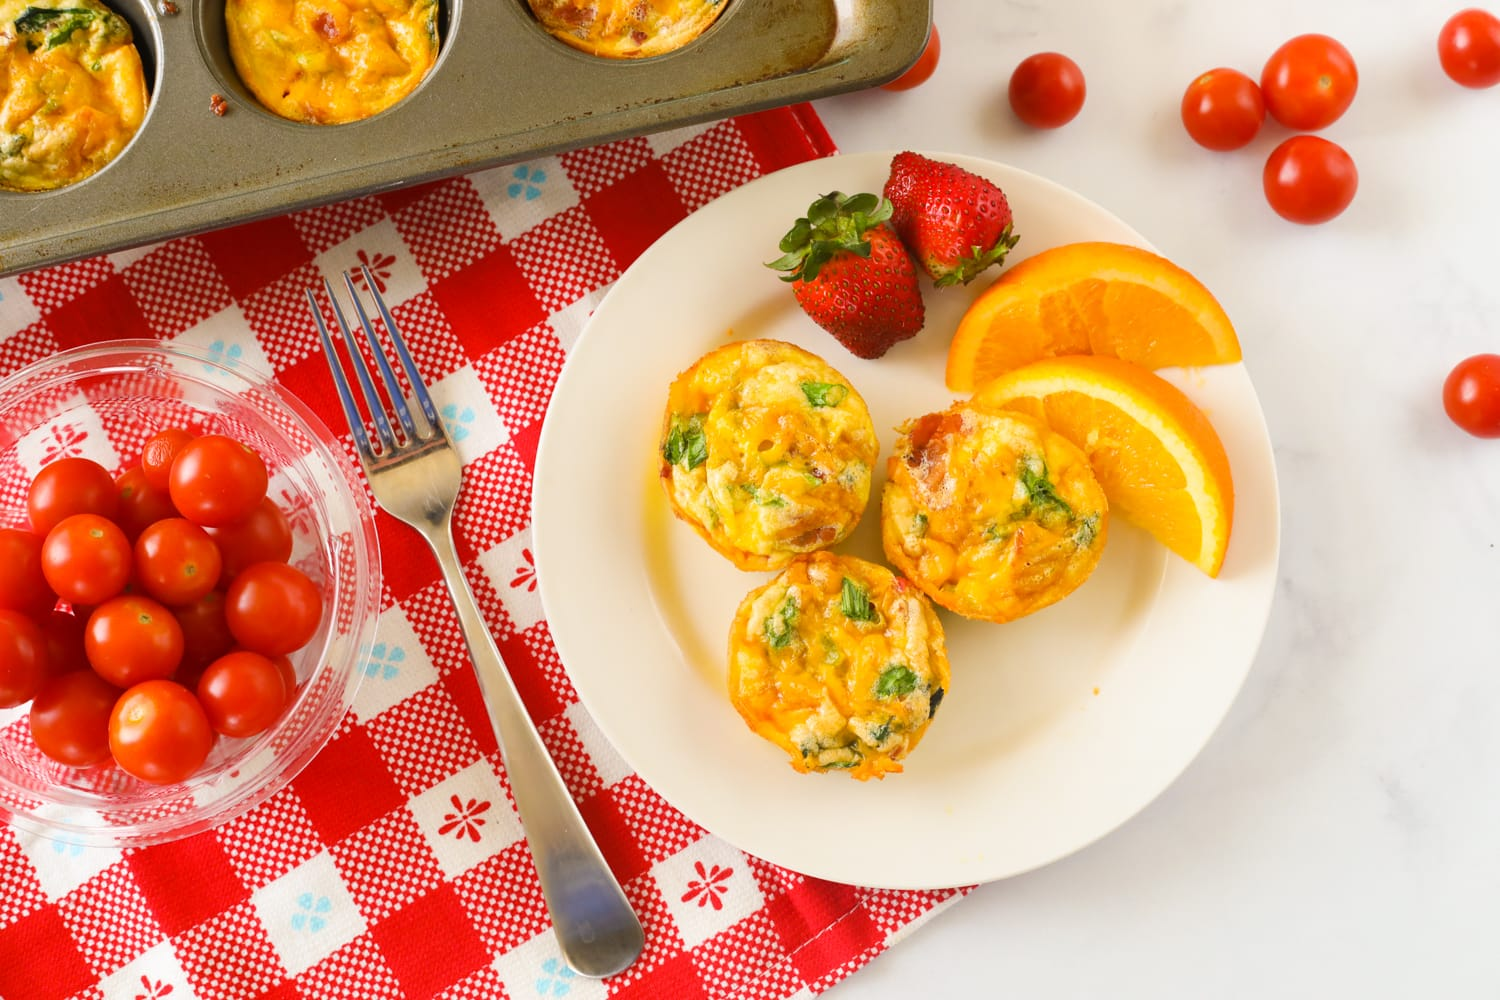 Breakfast egg muffins on a plate with fruit and tomatoes